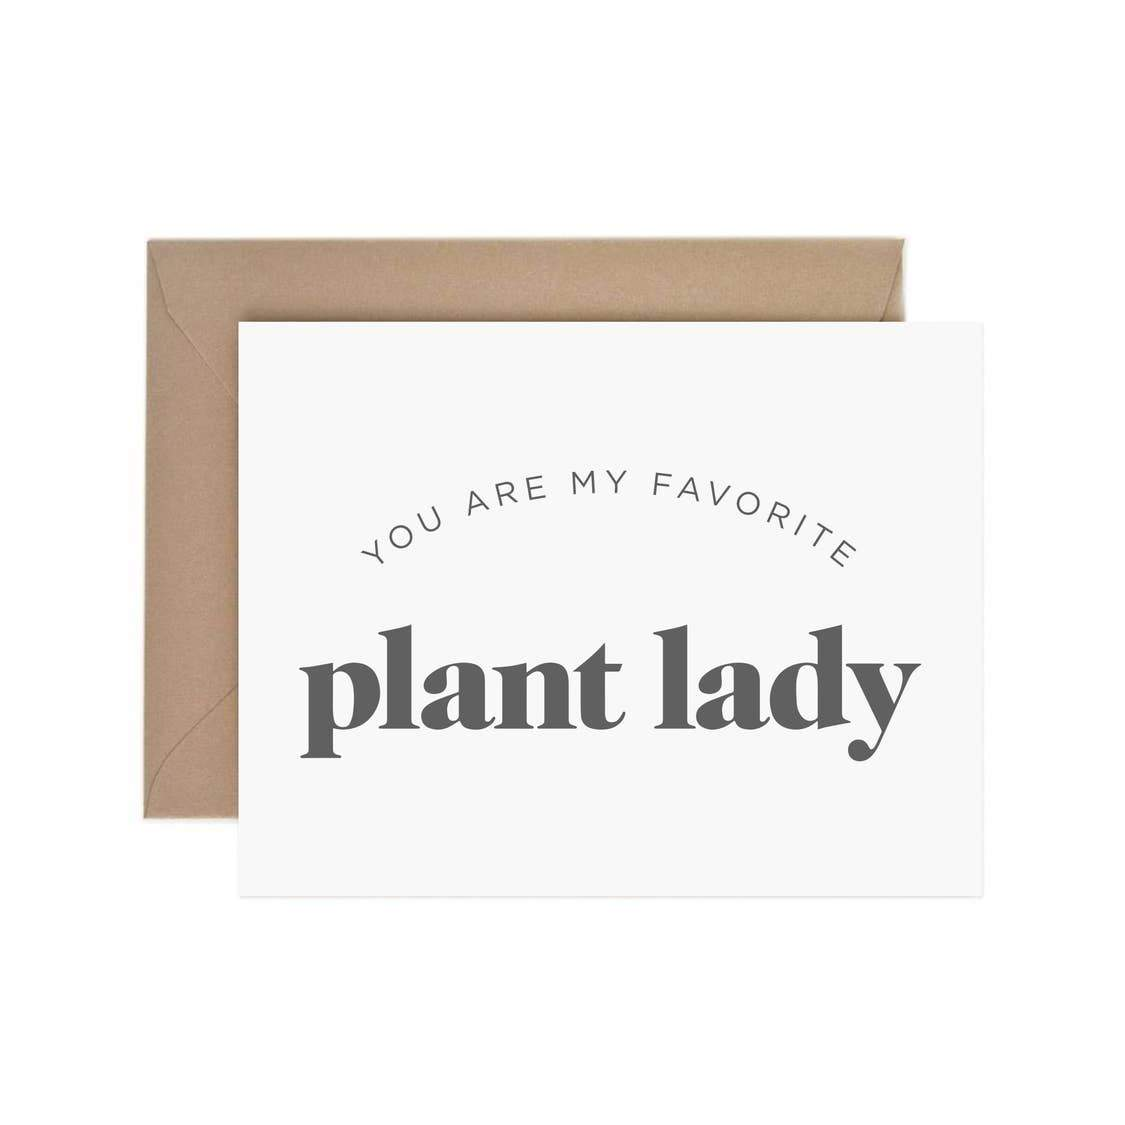 My Favorite Plant Lady Card - Urban Sprouts